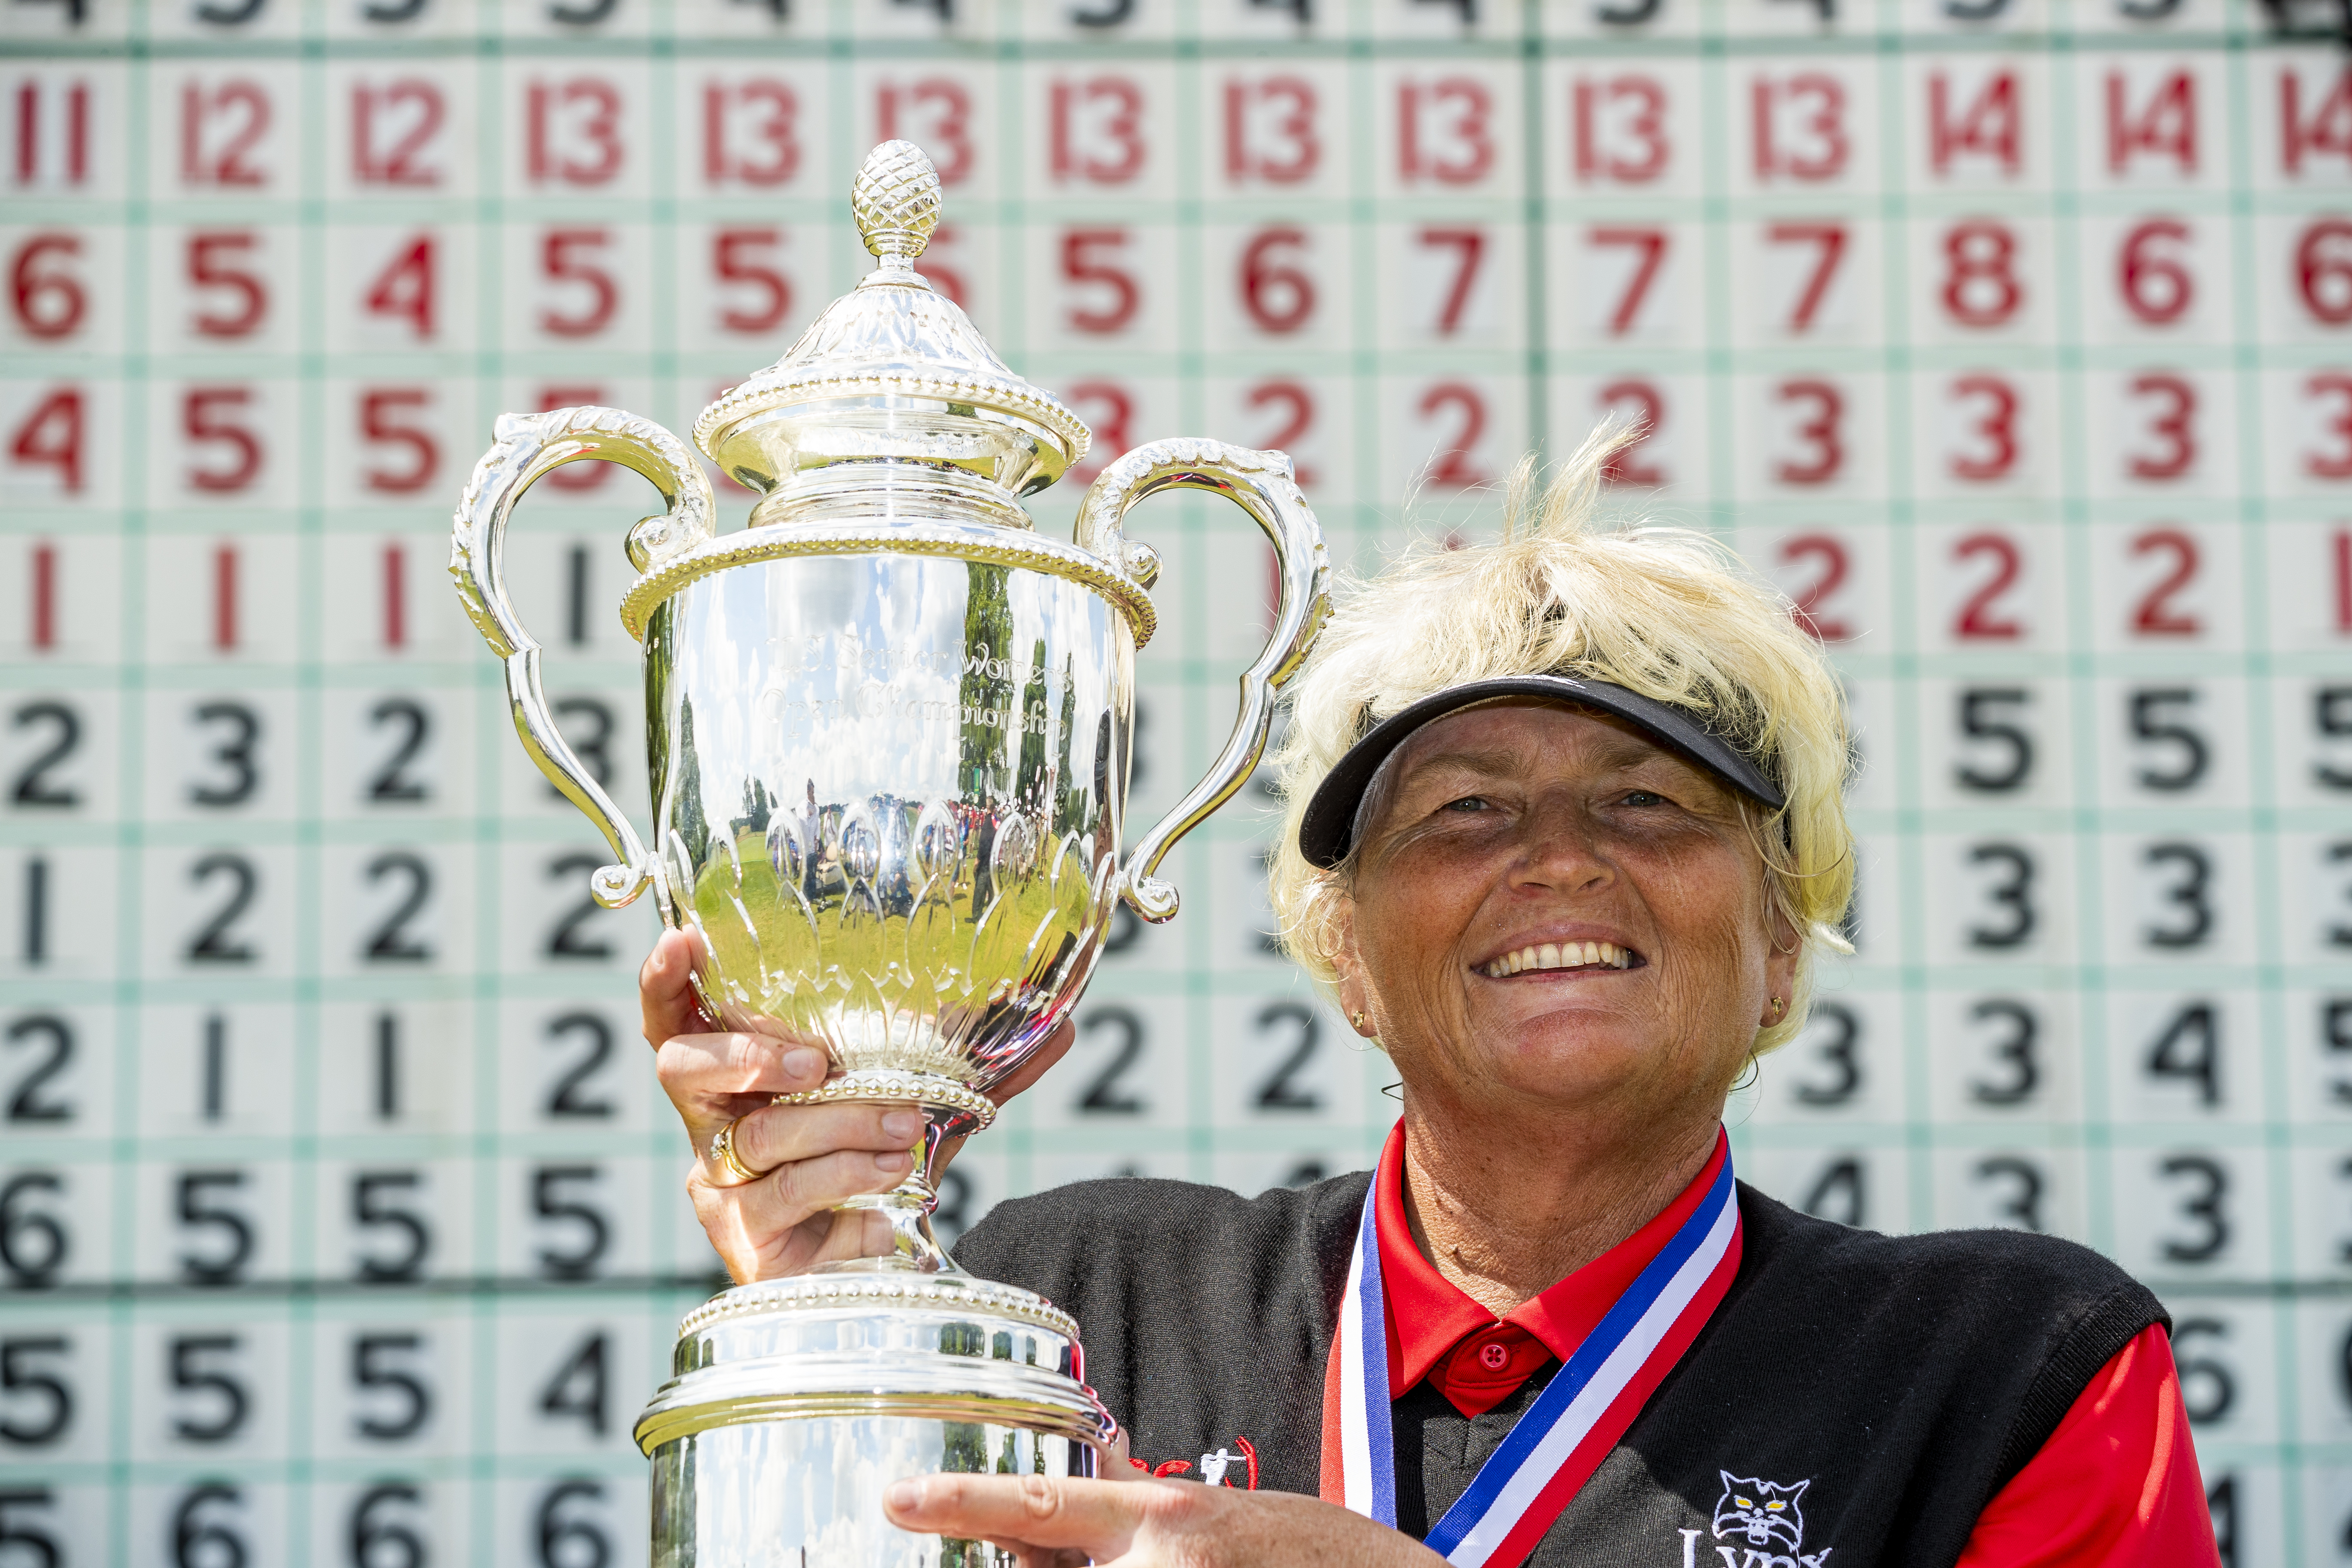 Laura Davies poses with the trophy after winning the 2018 U.S. Senior Women's Open at Chicago Golf Club in Wheaton, Ill. on Sunday, July 15, 2018.  (Image: Copyright USGA/Chris Keane)